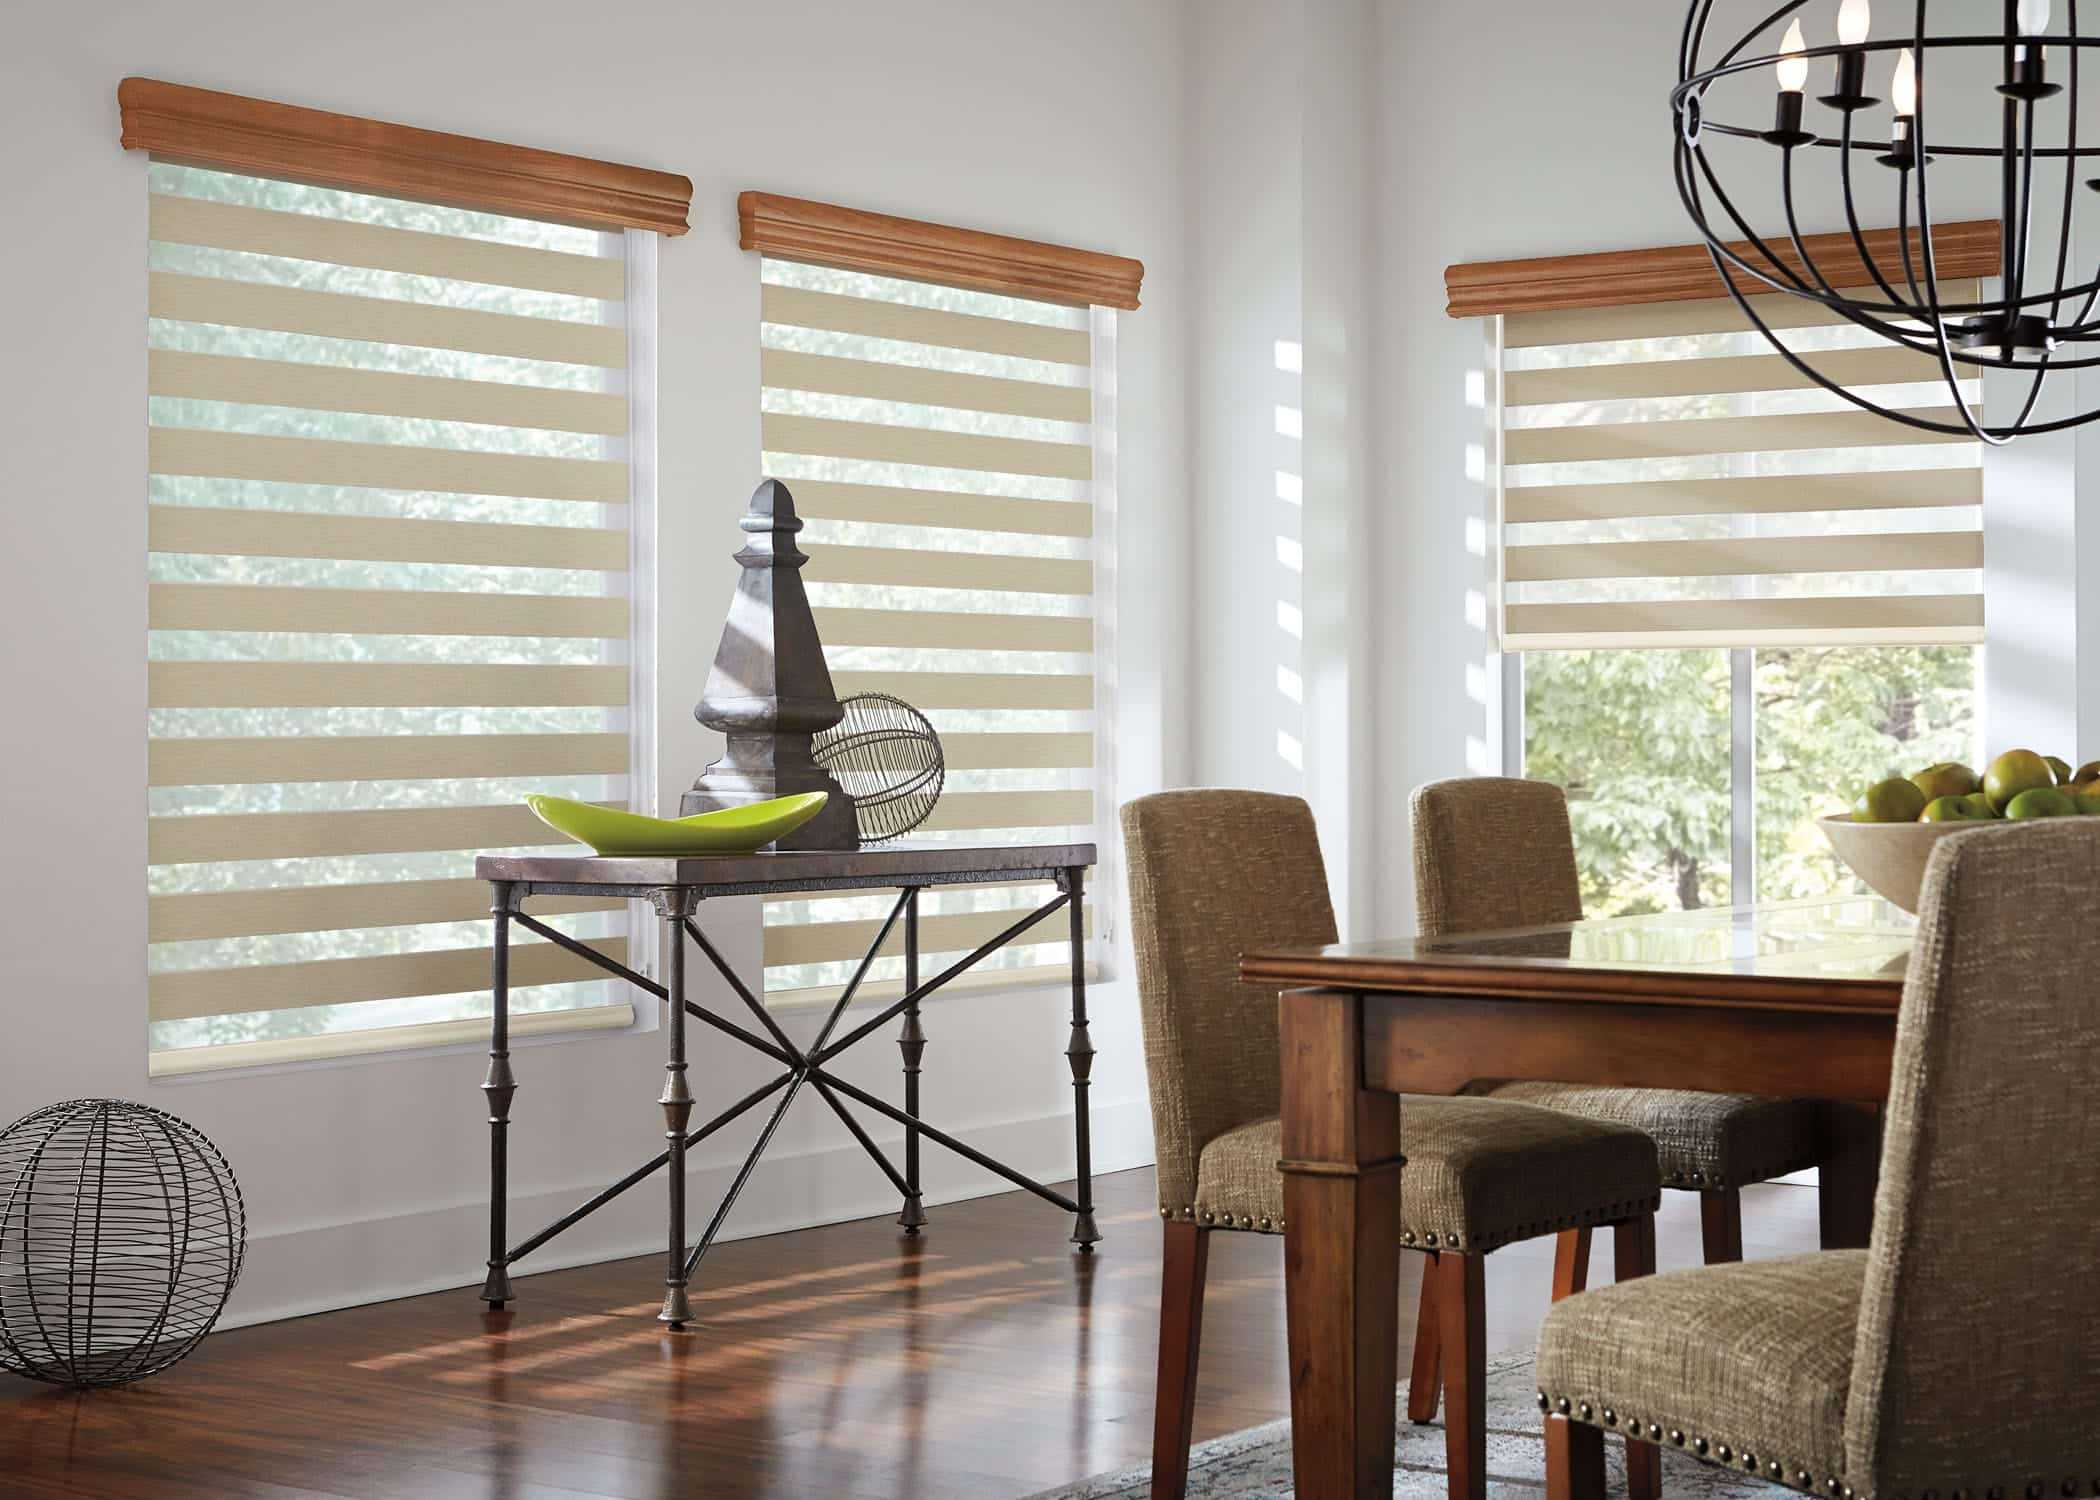 Zebra Blinds Dining Room - Allow lots of light to filter into your room. The sheer fabric is see-through, and the privacy fabric is translucent. Keep UV Out